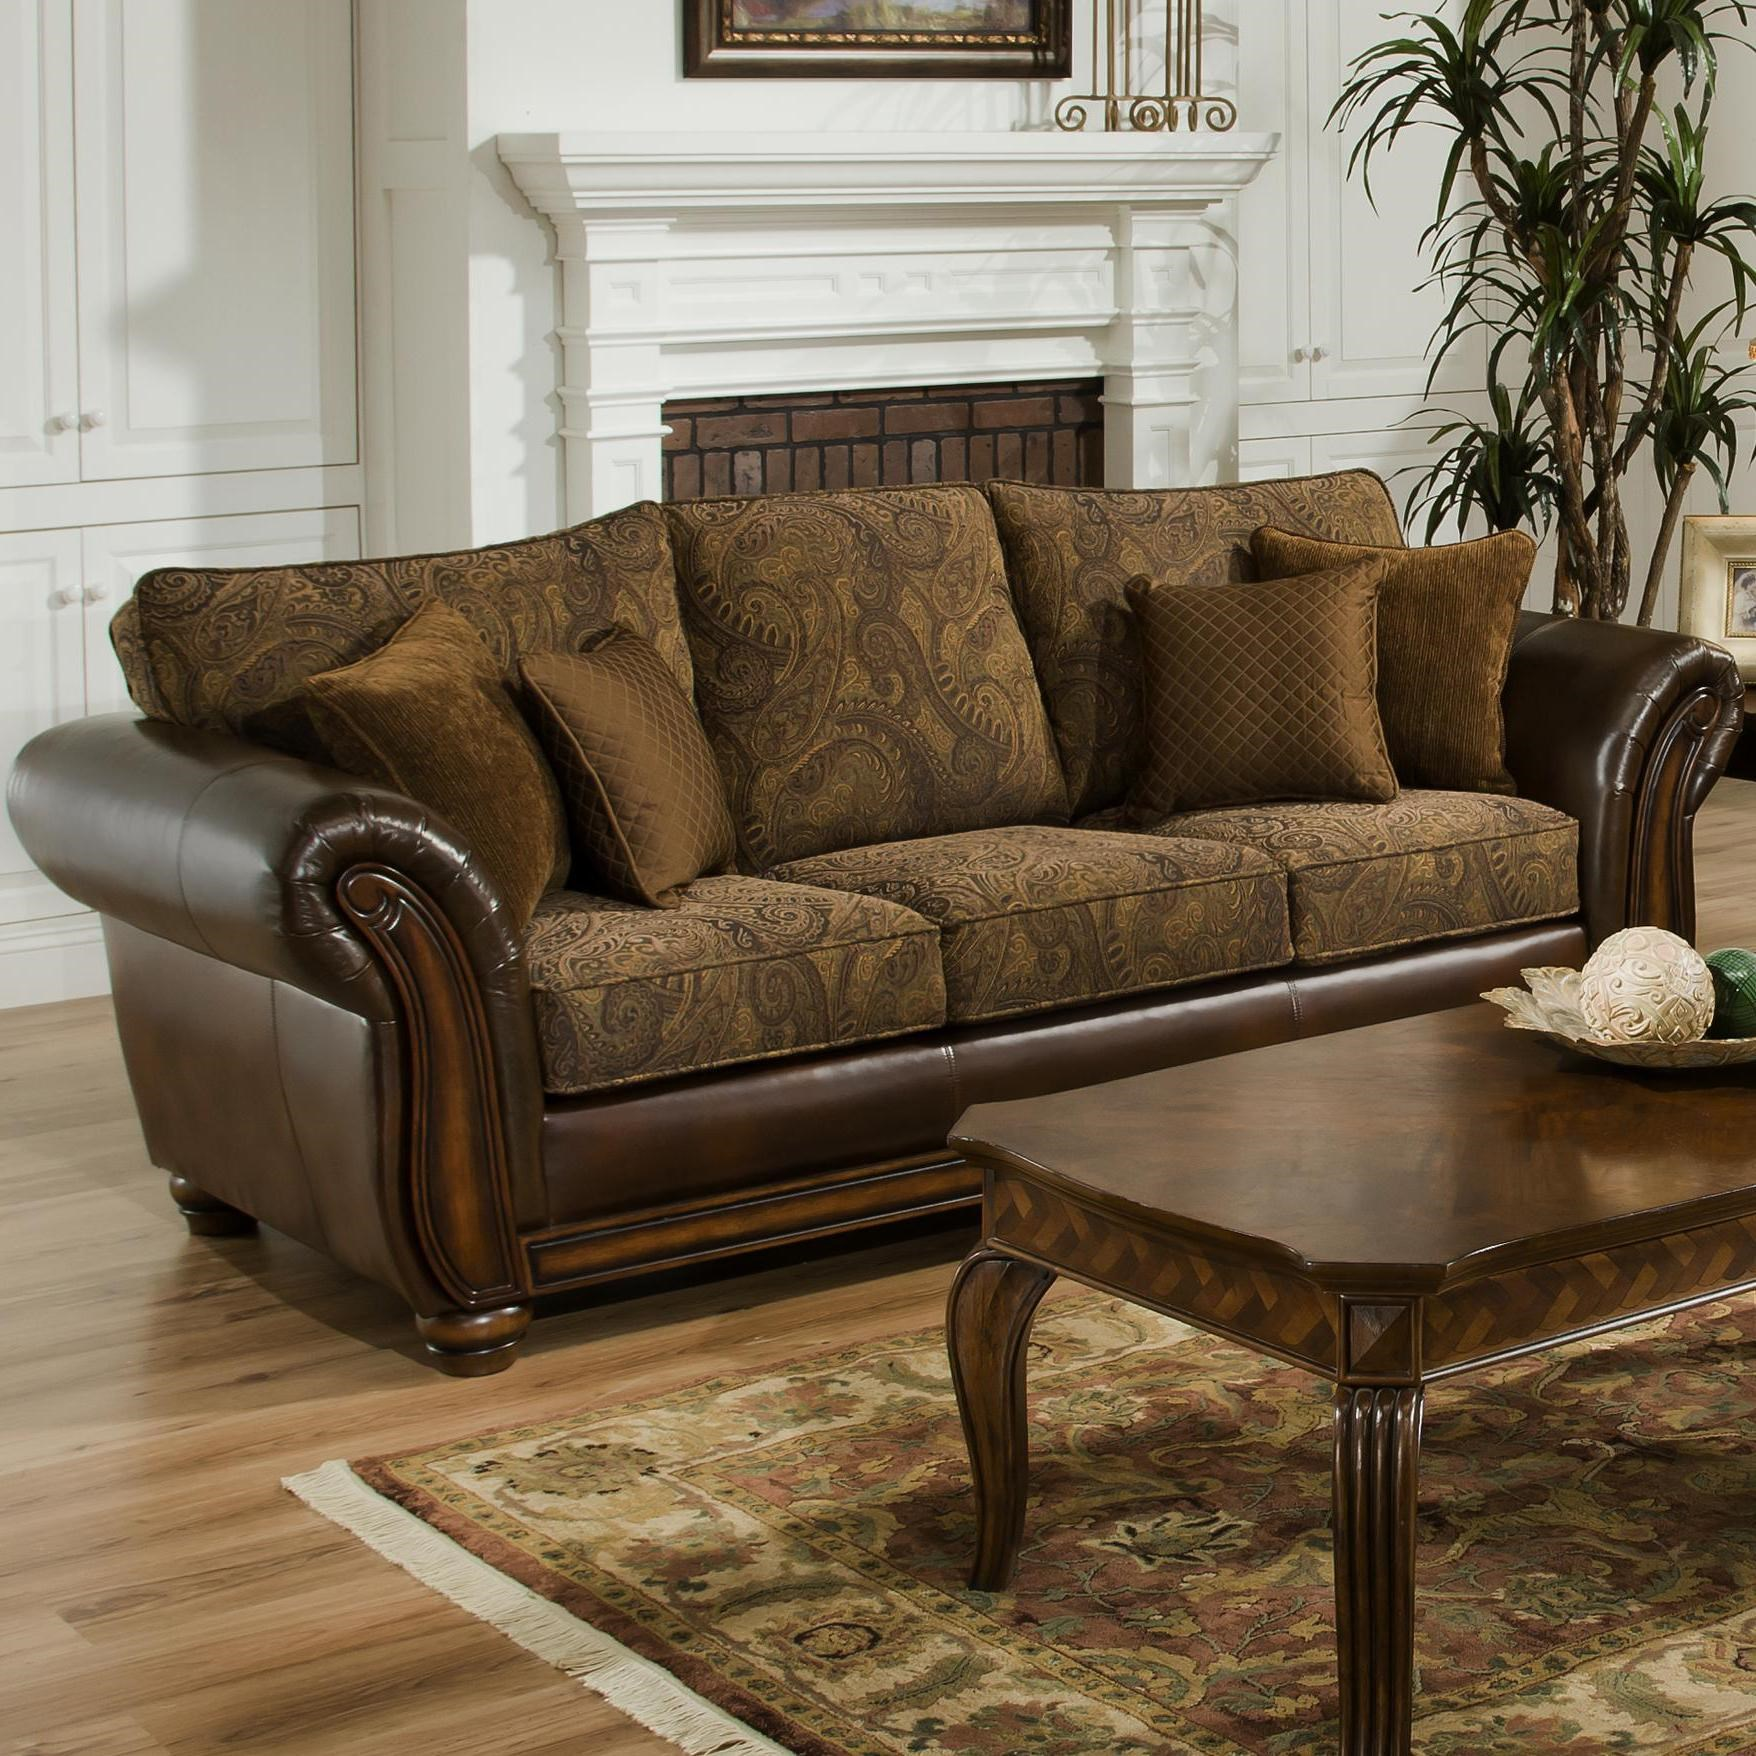 simmons upholstery queen leather and chenille hideabed sofa sleeper royal furniture sleeper sofas